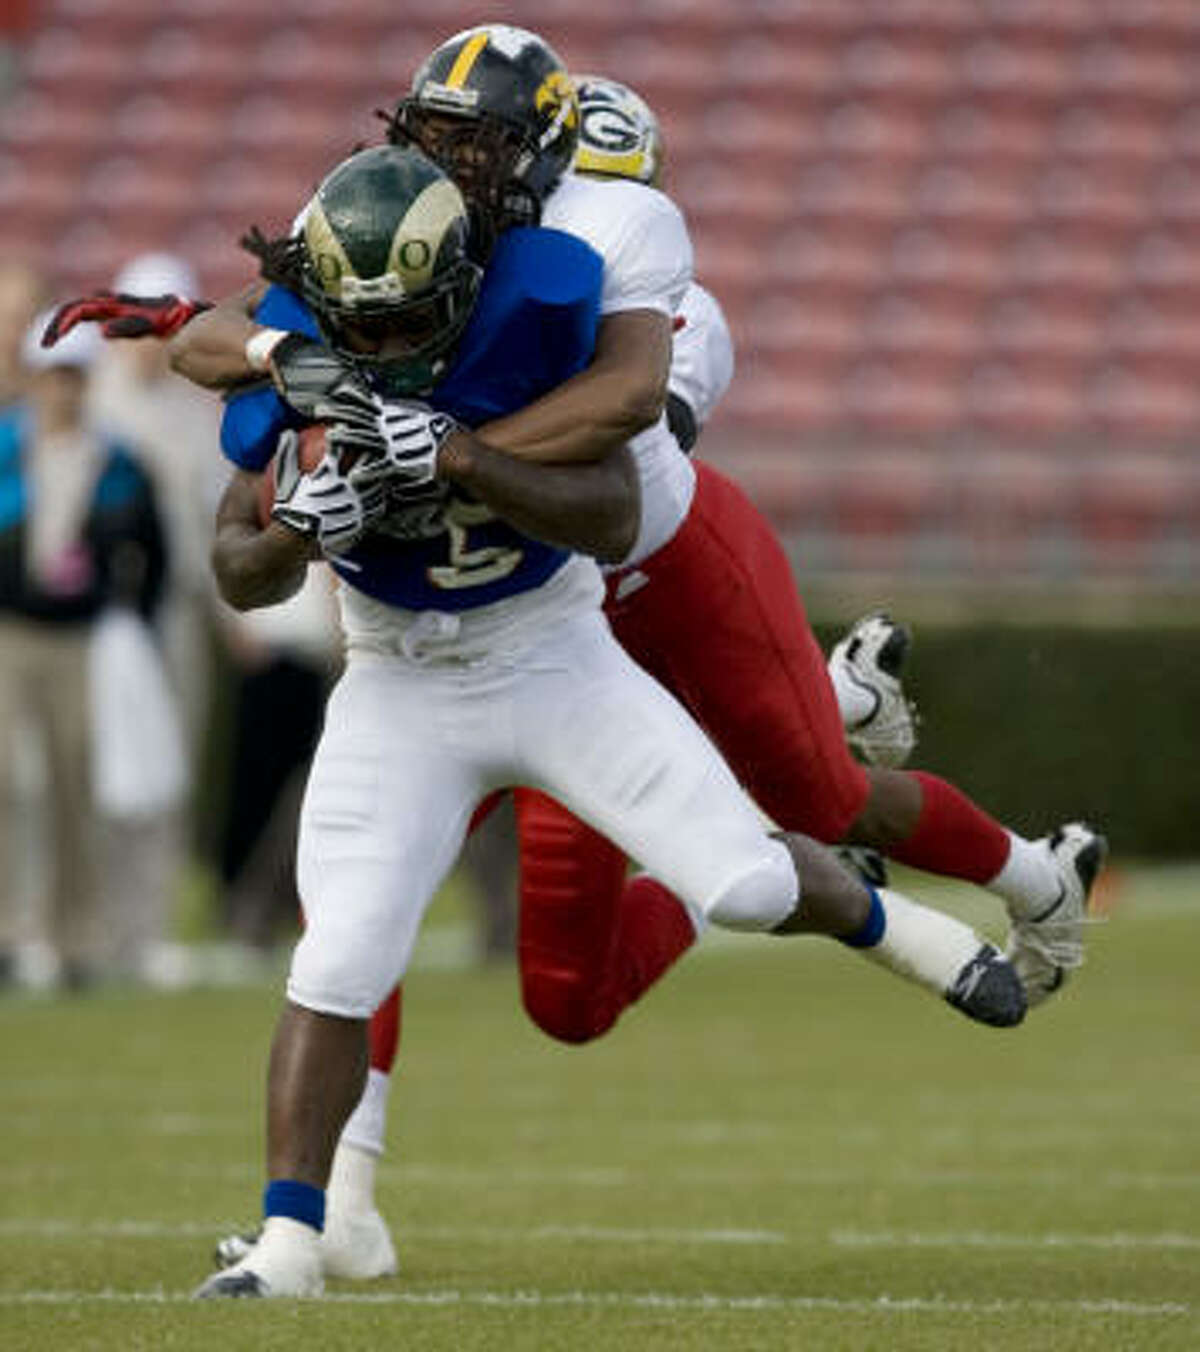 West's Gartrell Johnson, a running back from Colorado State, is tackled in the first half.